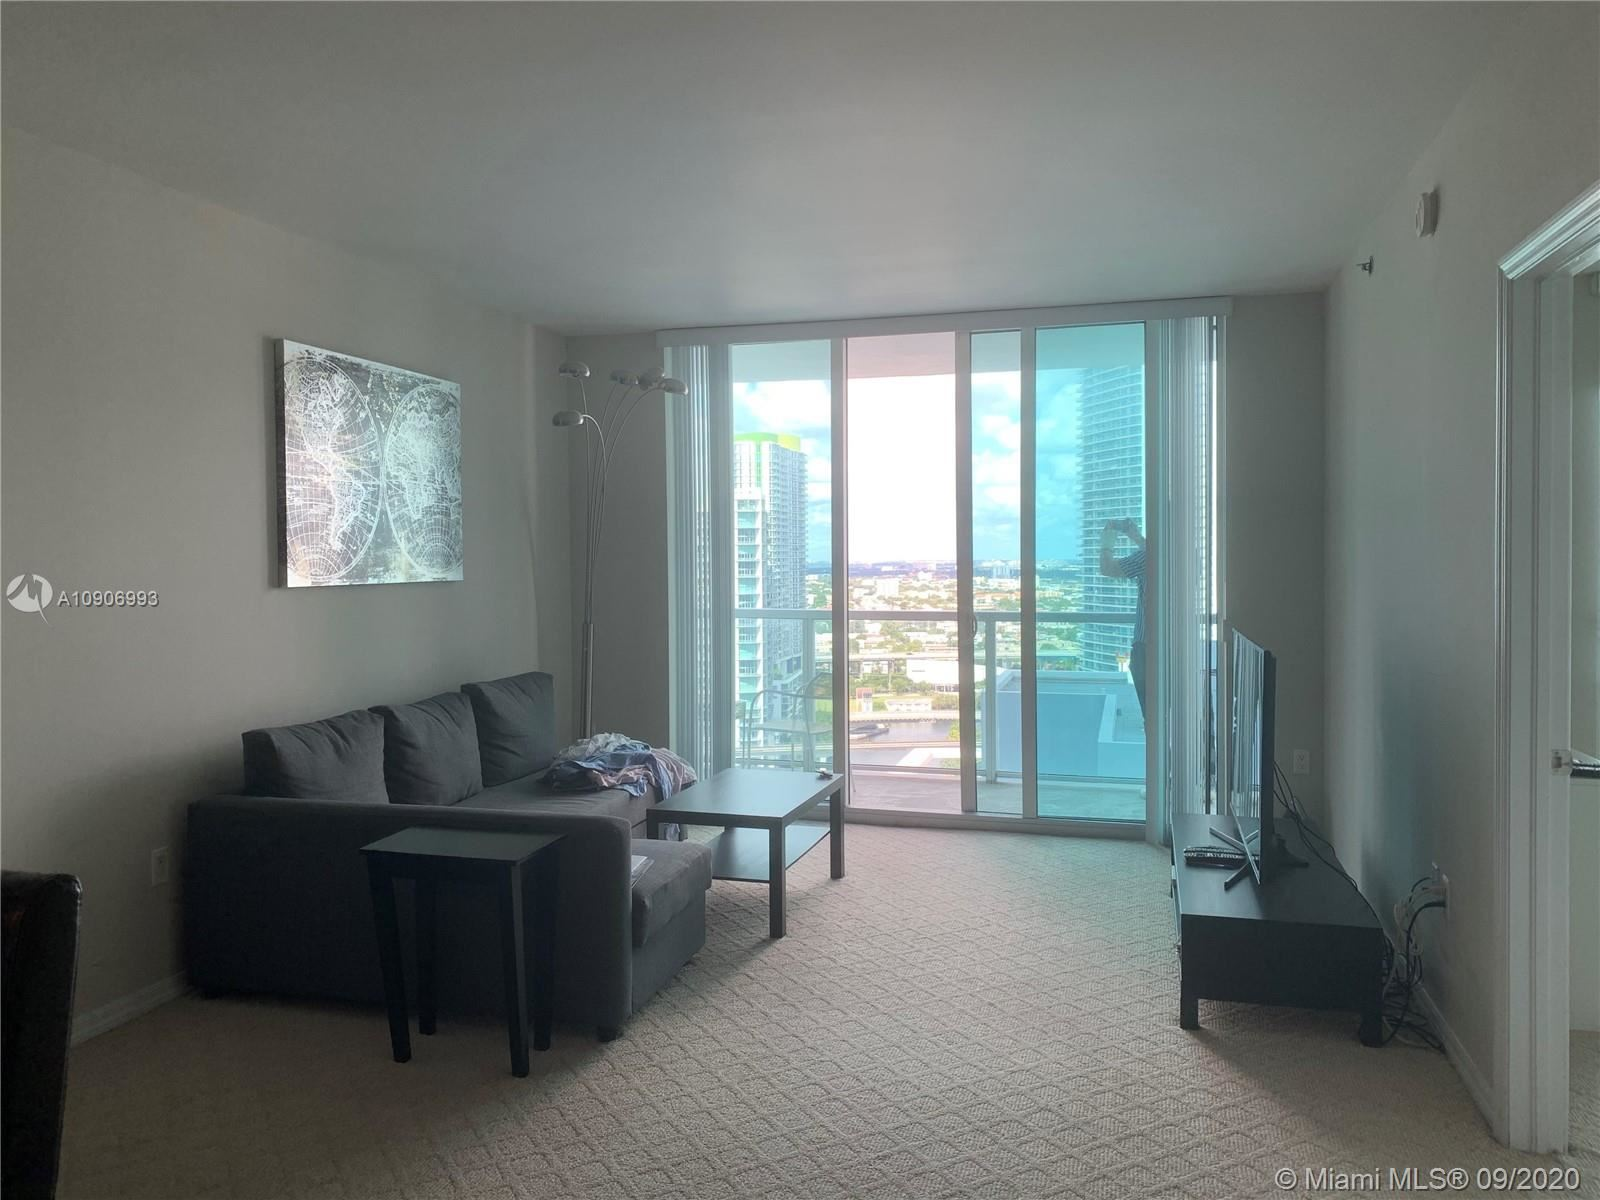 55 SE 6th St #3000, Miami, FL 33131 - #: A10906993